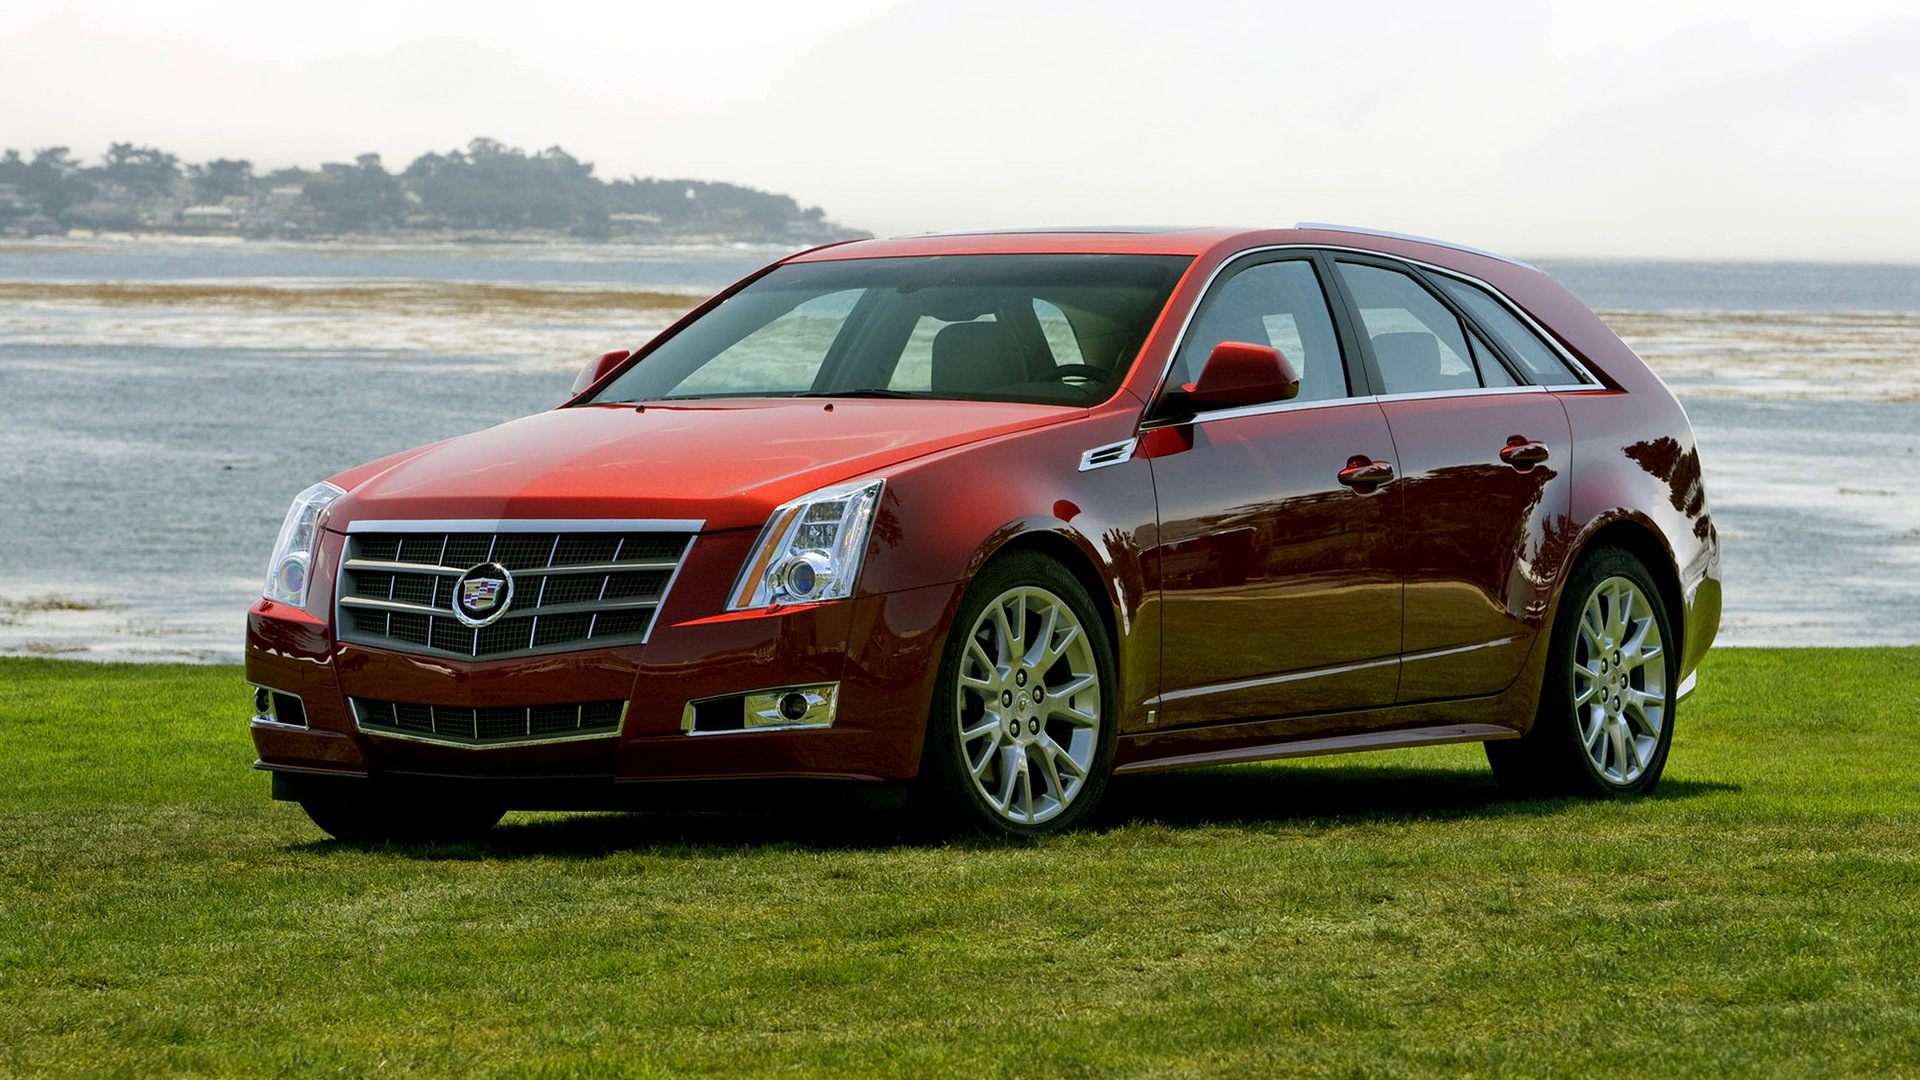 Cadillac Cts Sport Wagon 2009 Wallpapers And Hd Images